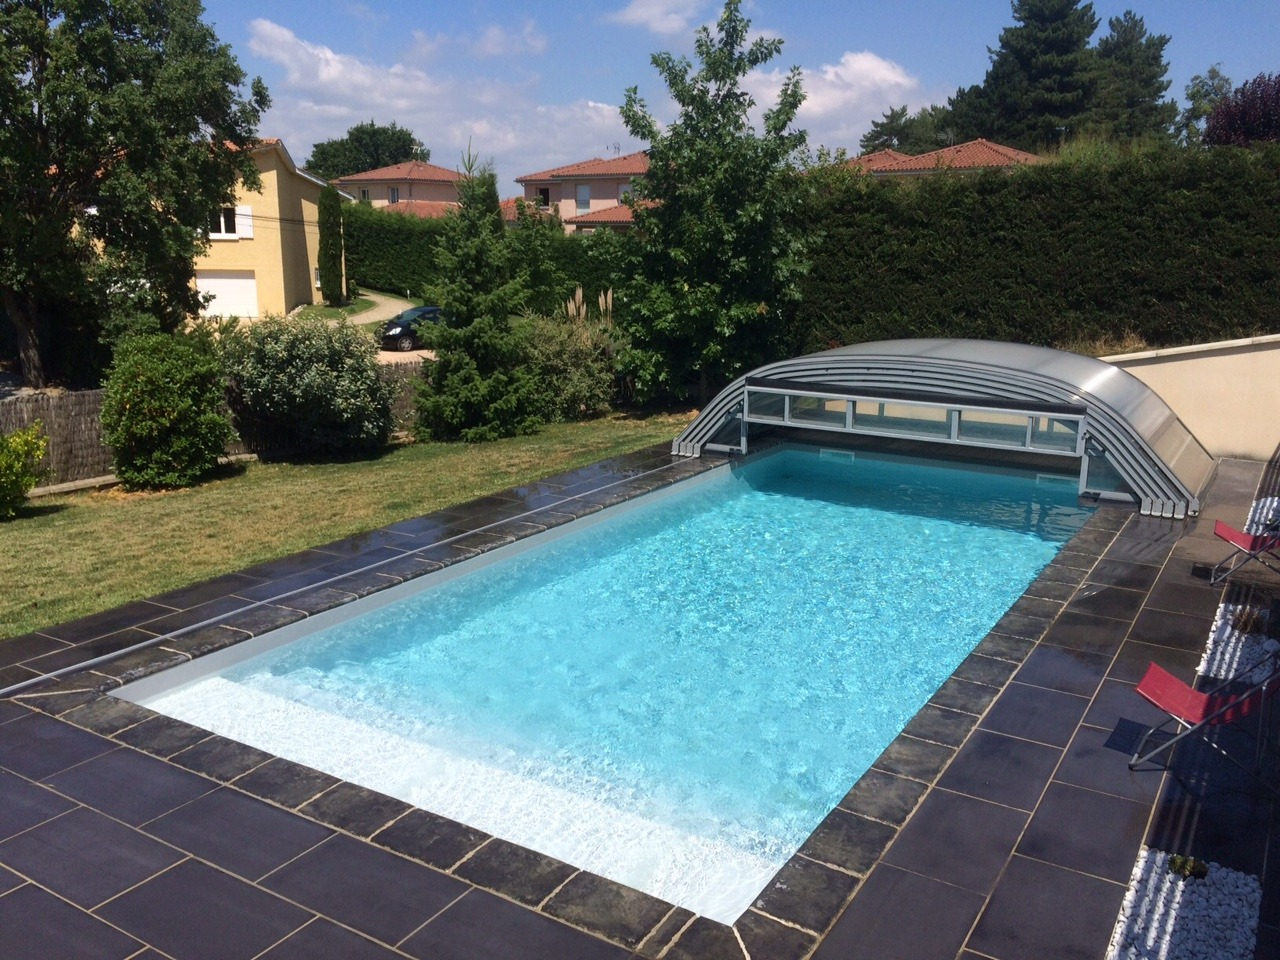 Elitys mianso abri de piscine bas t lescopique ec 39 creation for Abri piscine